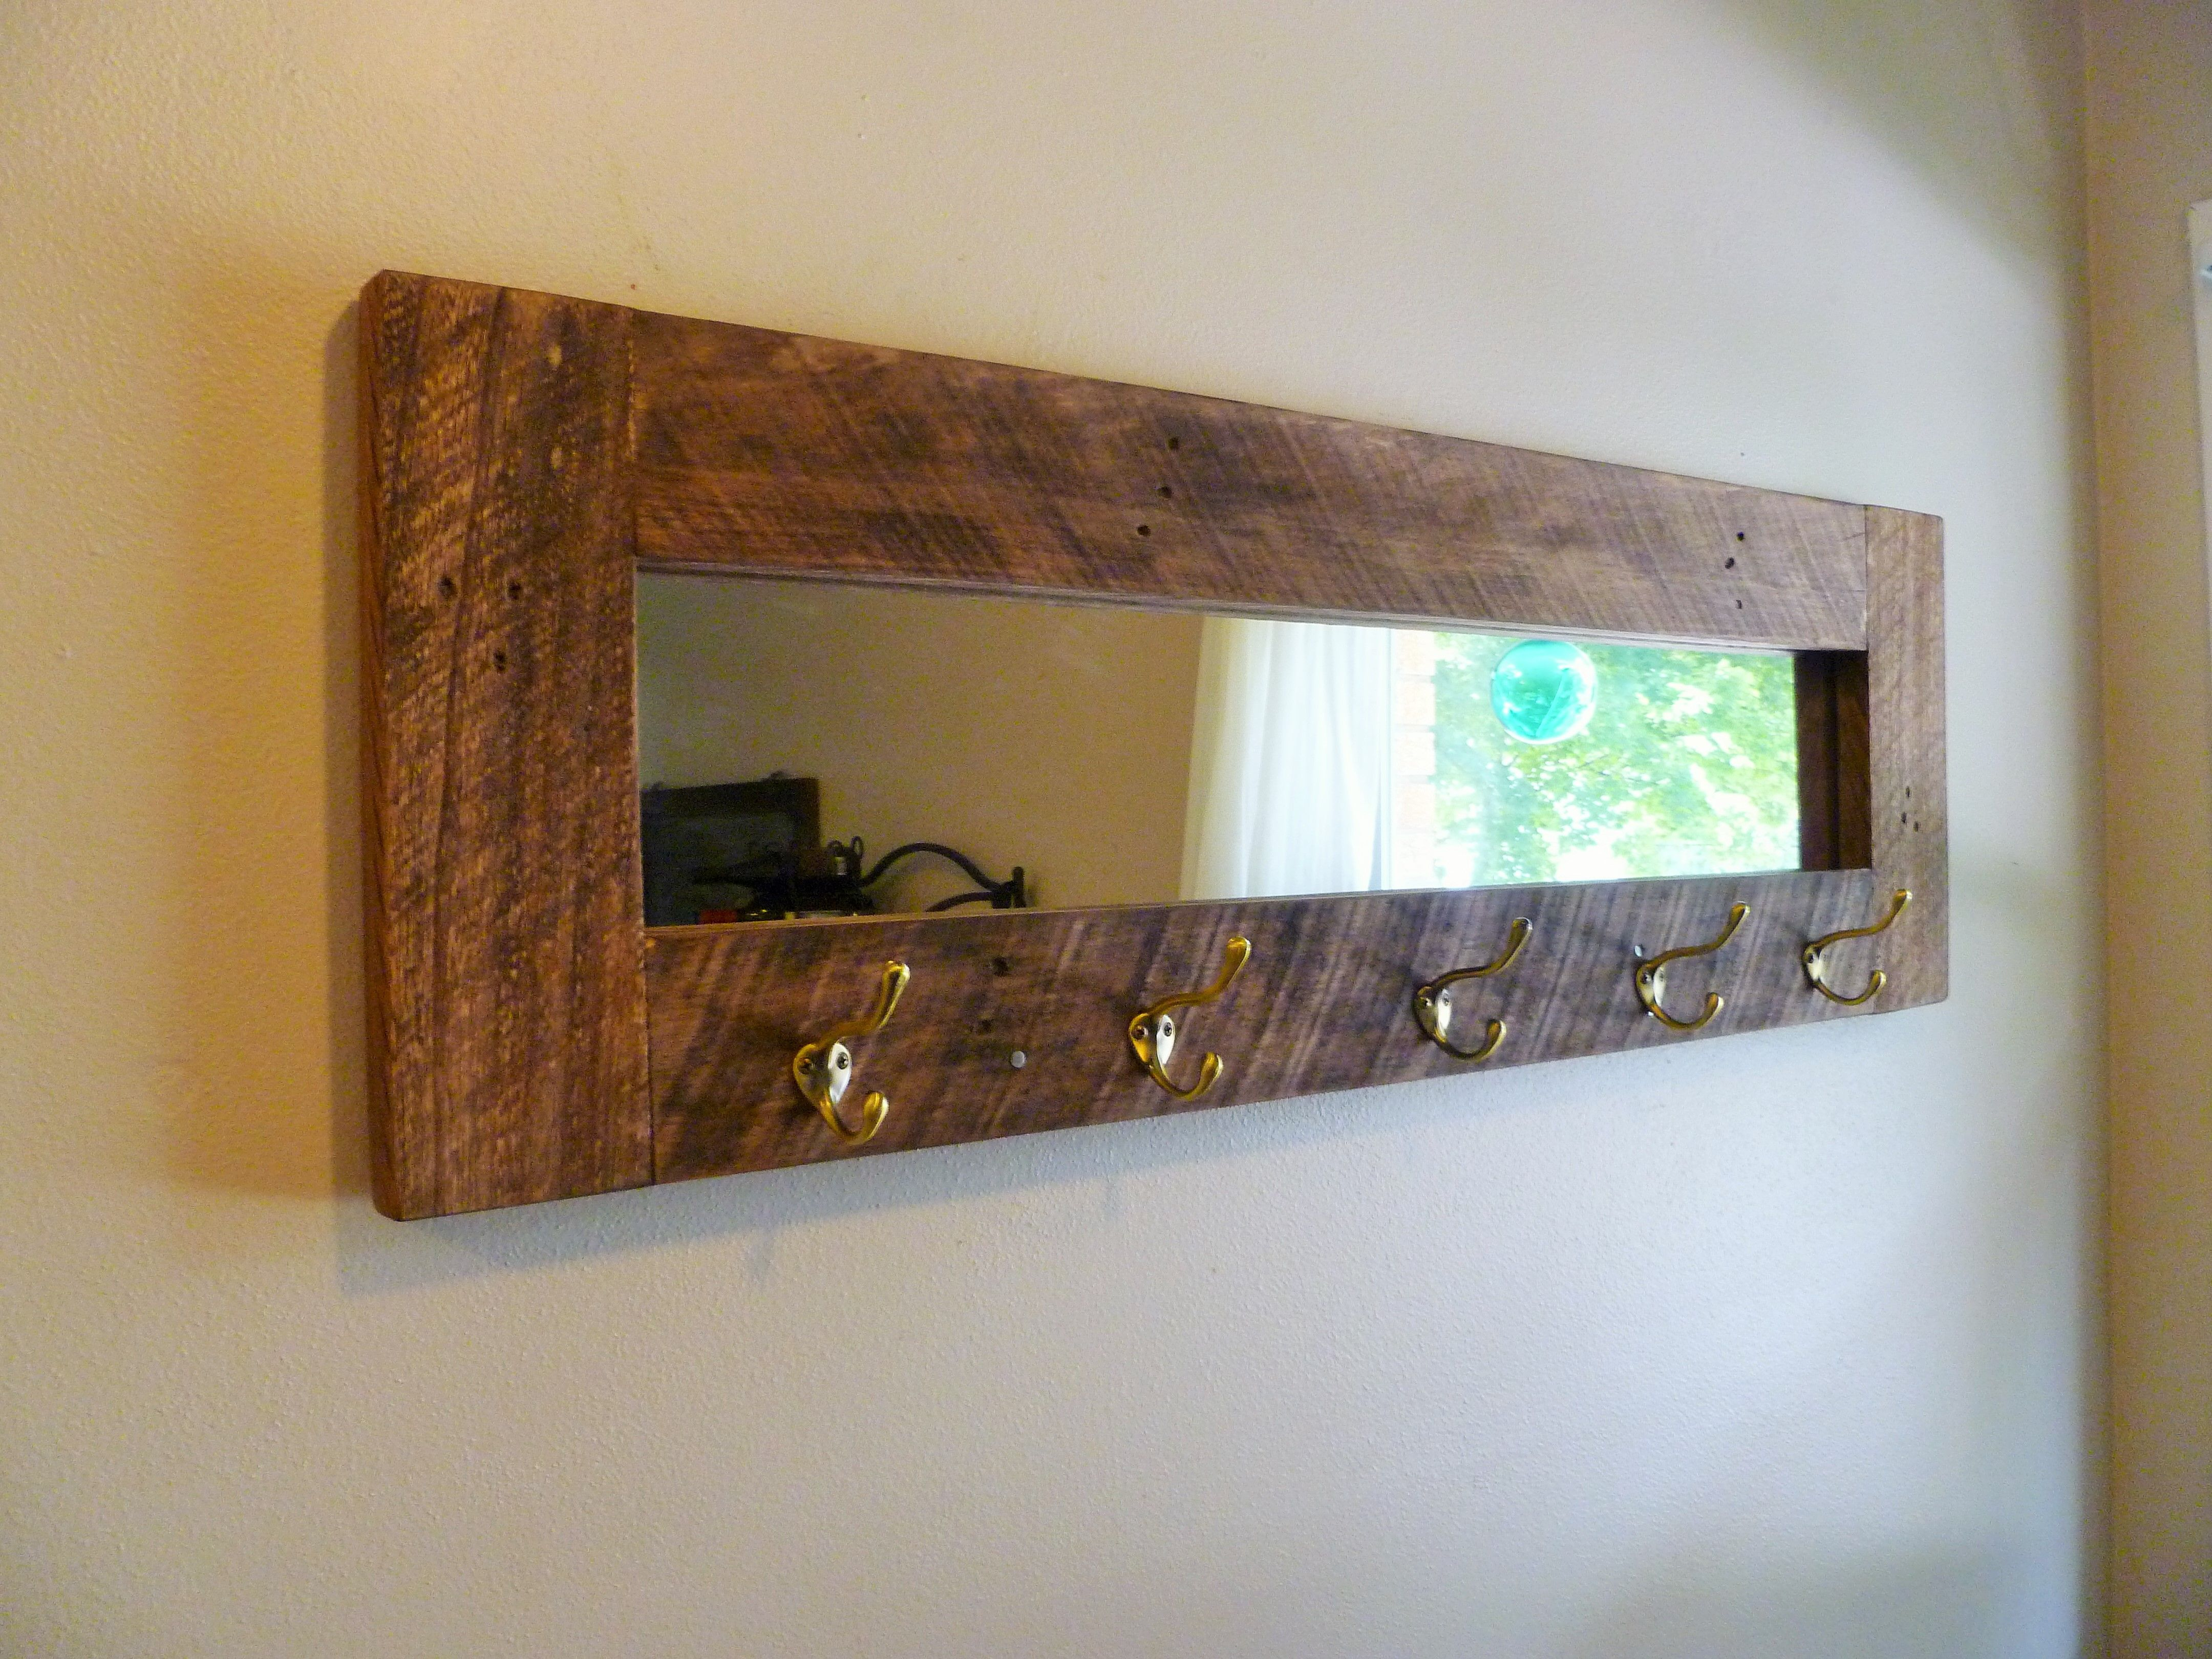 Barn wood mirror/ coat rack we designed for the Summer 2014 ...